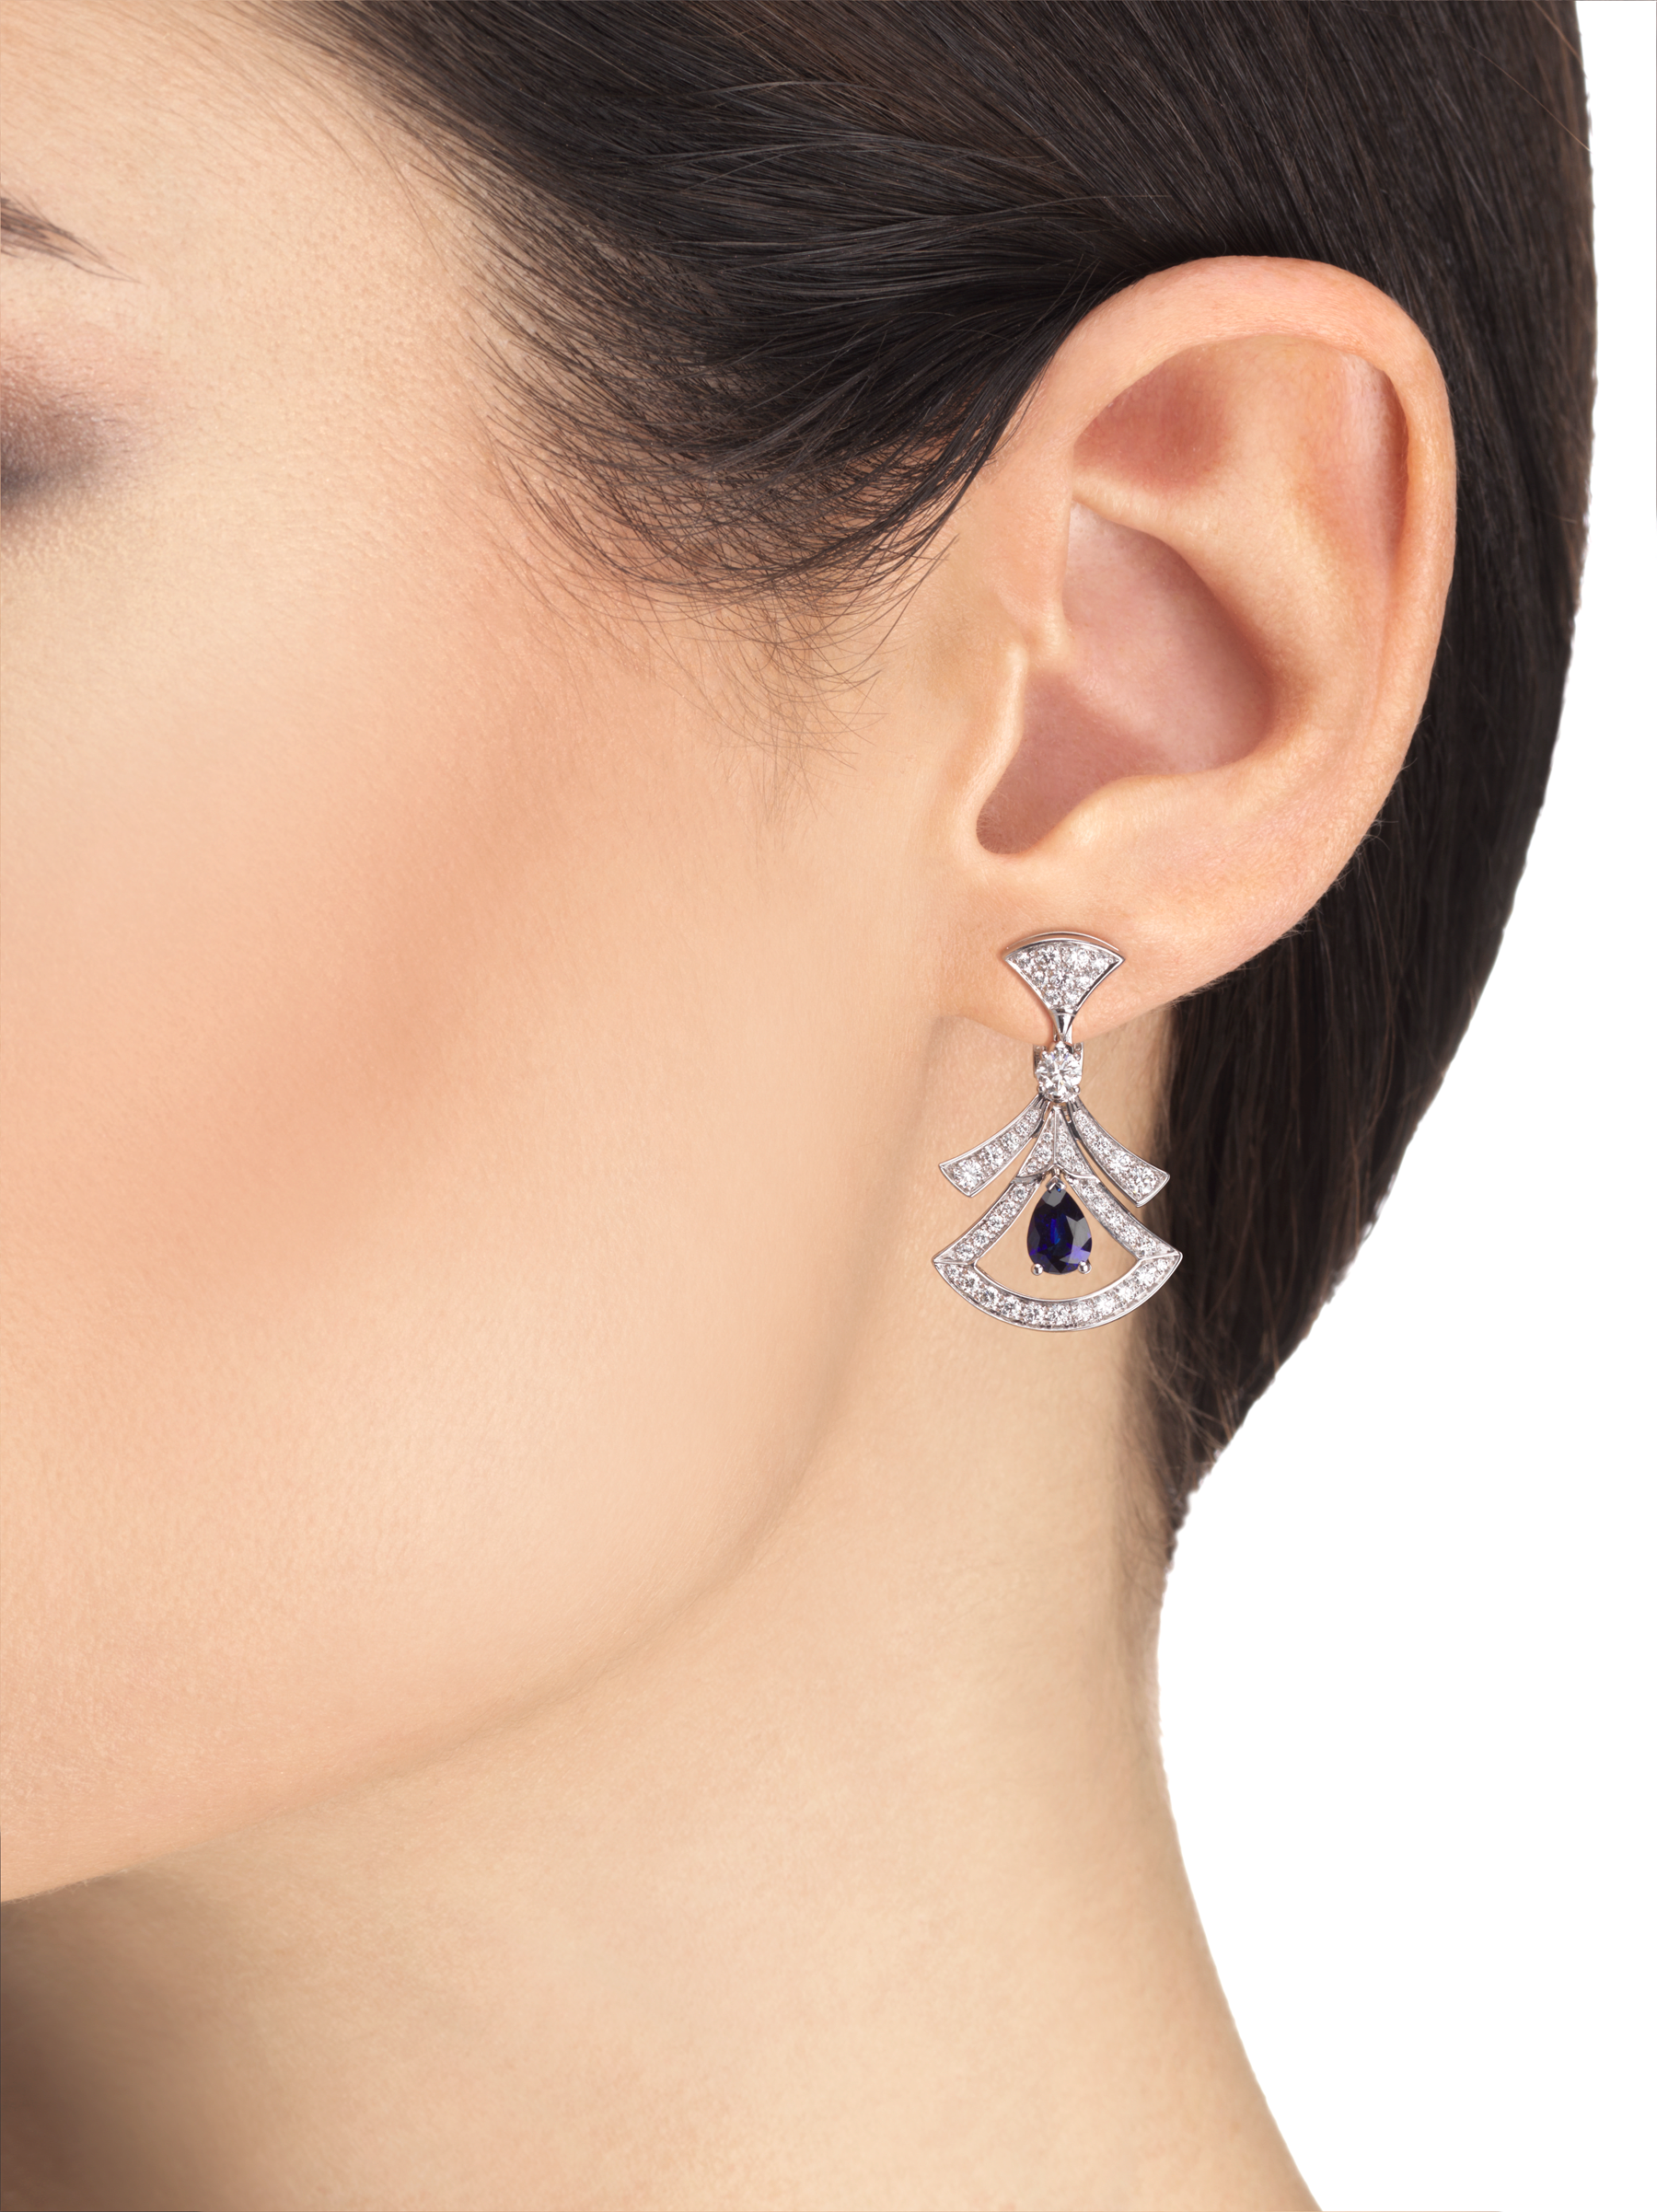 DIVAS' DREAM 18 kt white gold openwork earrings, set with pear-shaped sapphires, round brilliant-cut and pavé diamonds. 357324 image 4